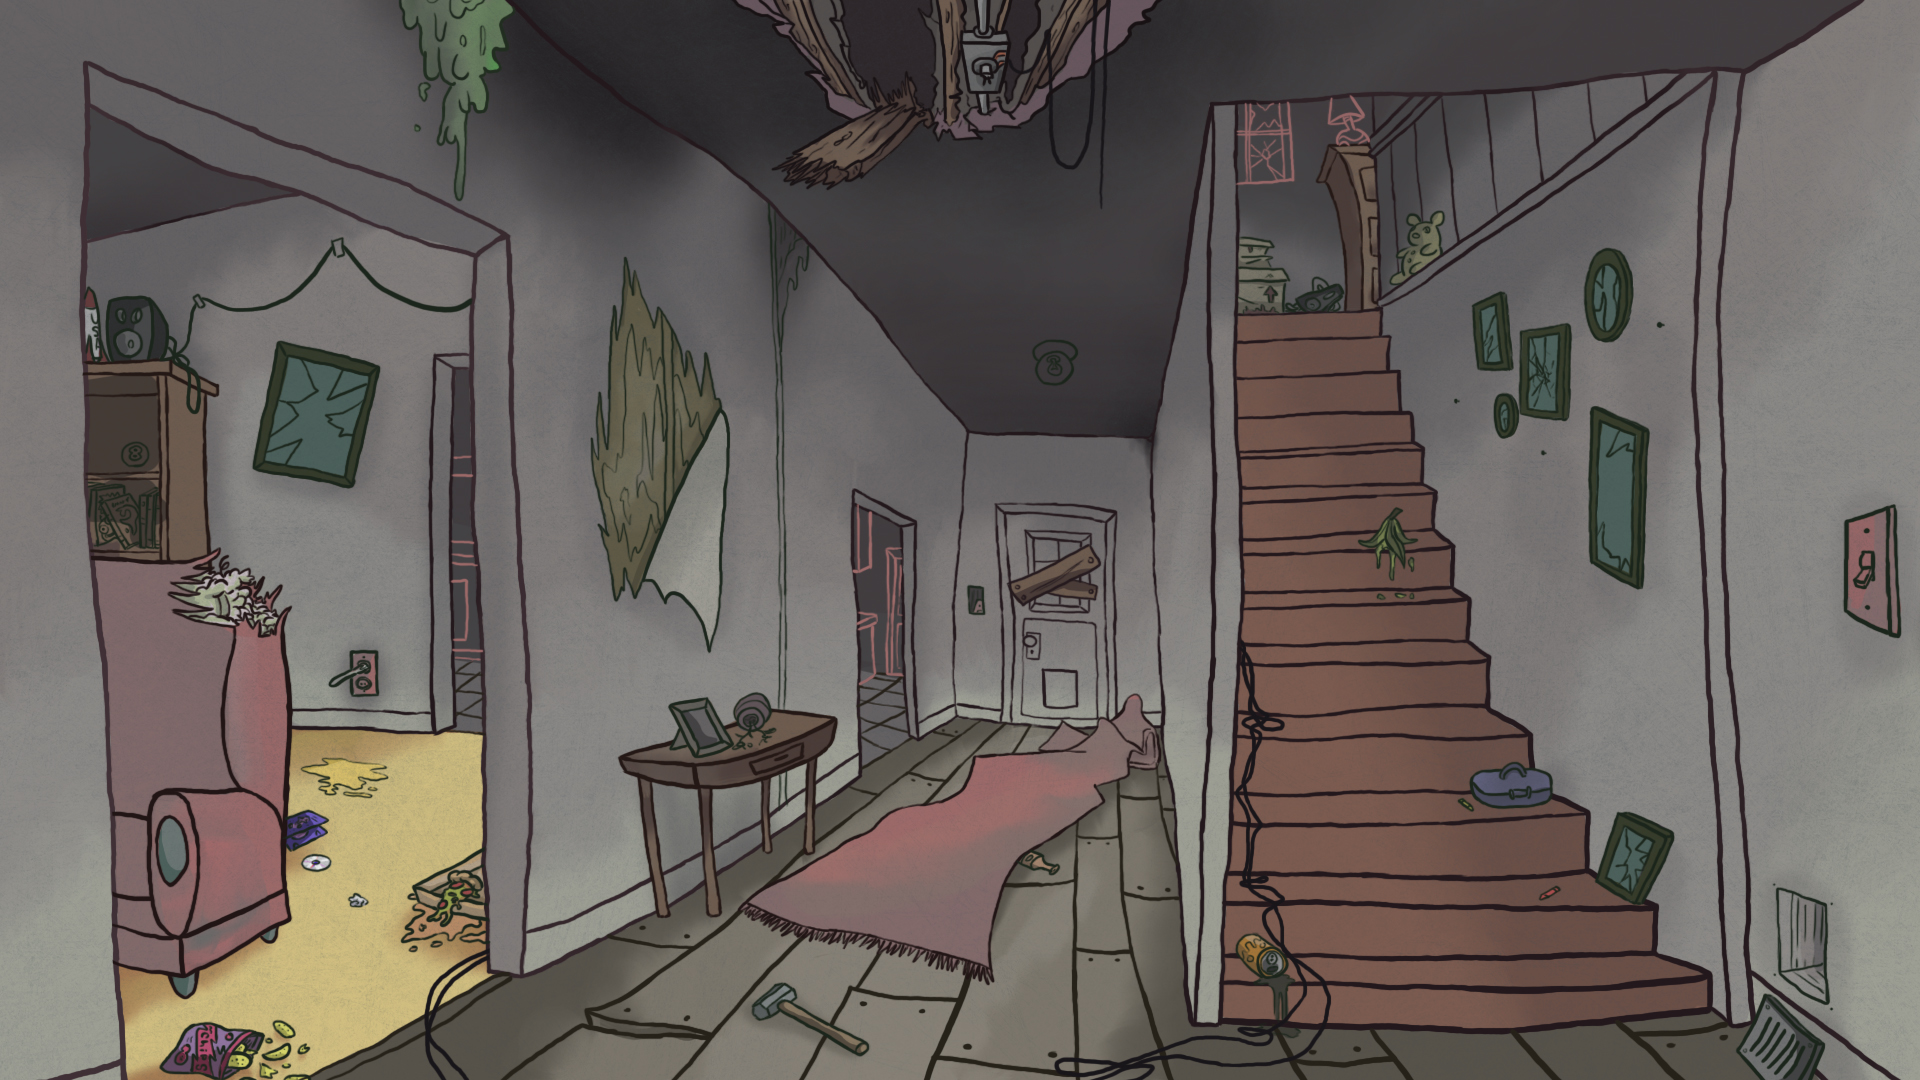 haunted house concept art animation background by